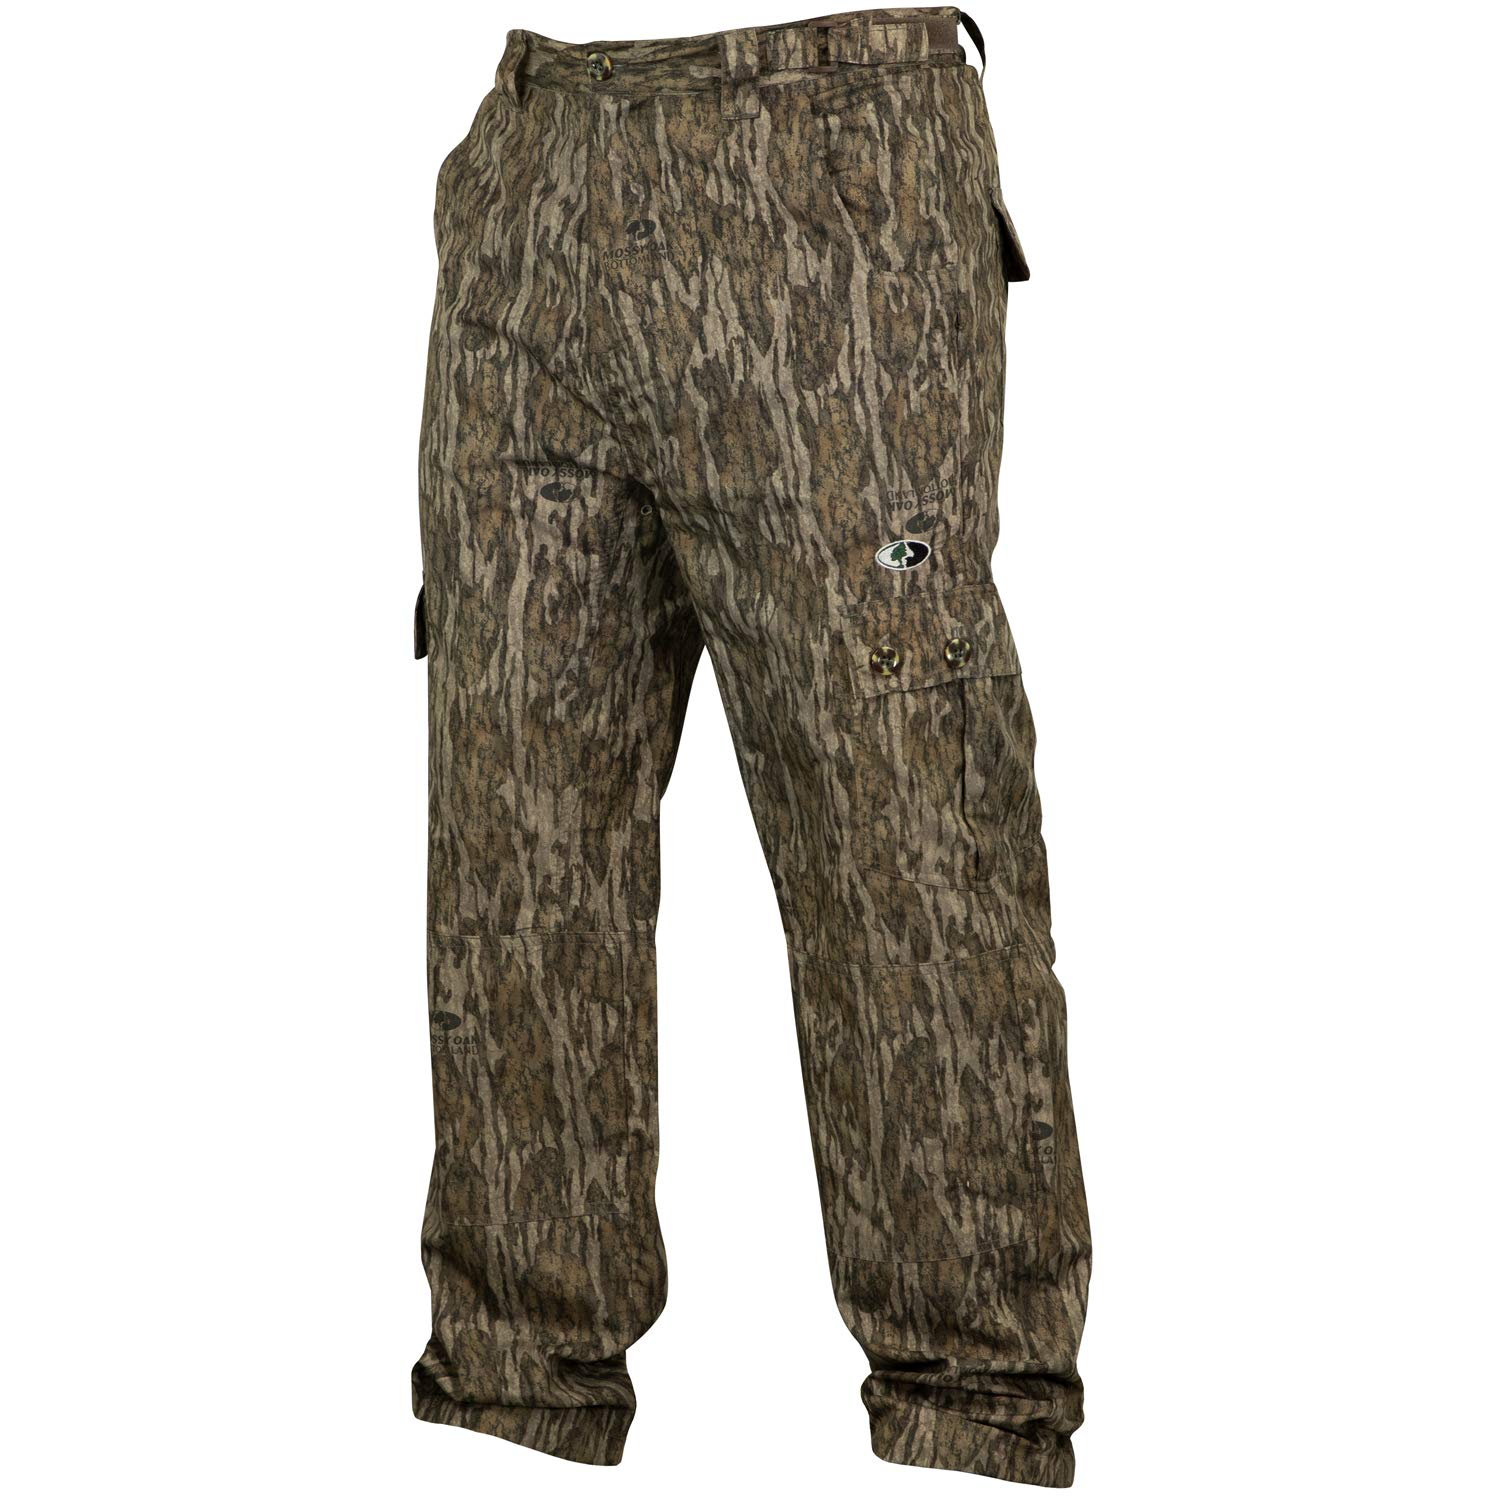 Mossy Oak Tibbee Camo Lightweight Hunting Pants for Men Camouflage Clothing